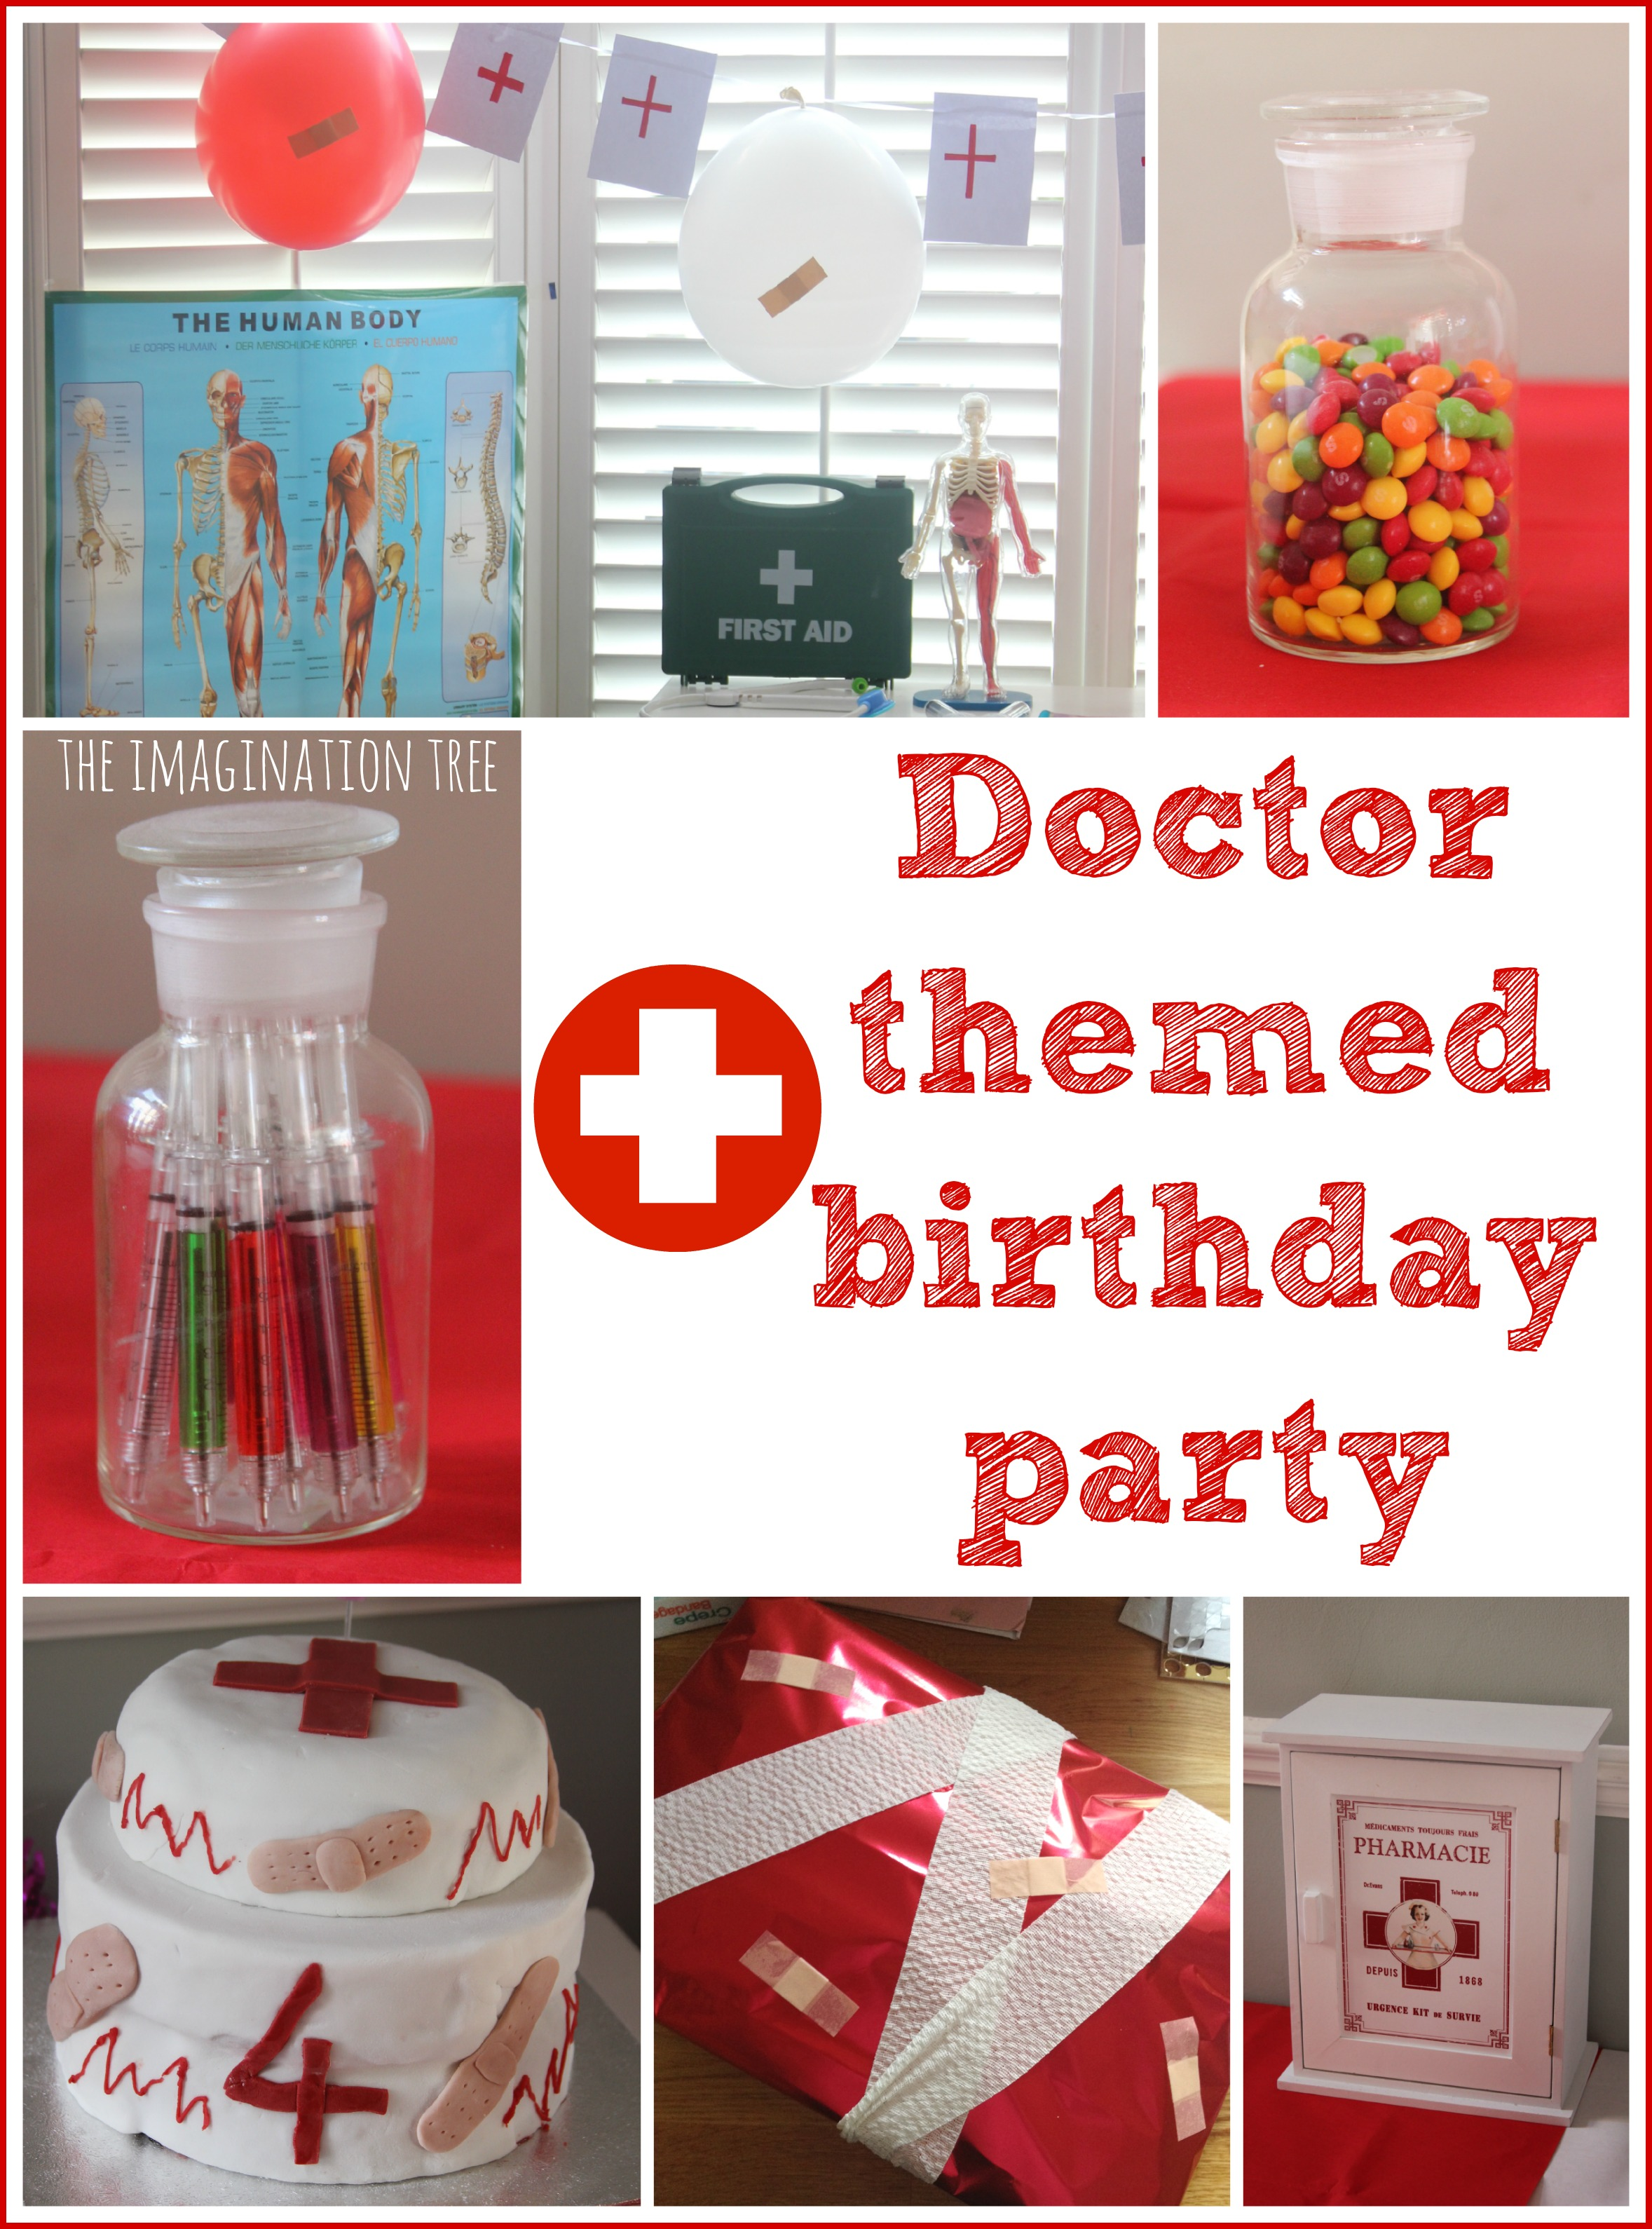 Doctor Themed Birthday Party With Ideas For Food Decorations And